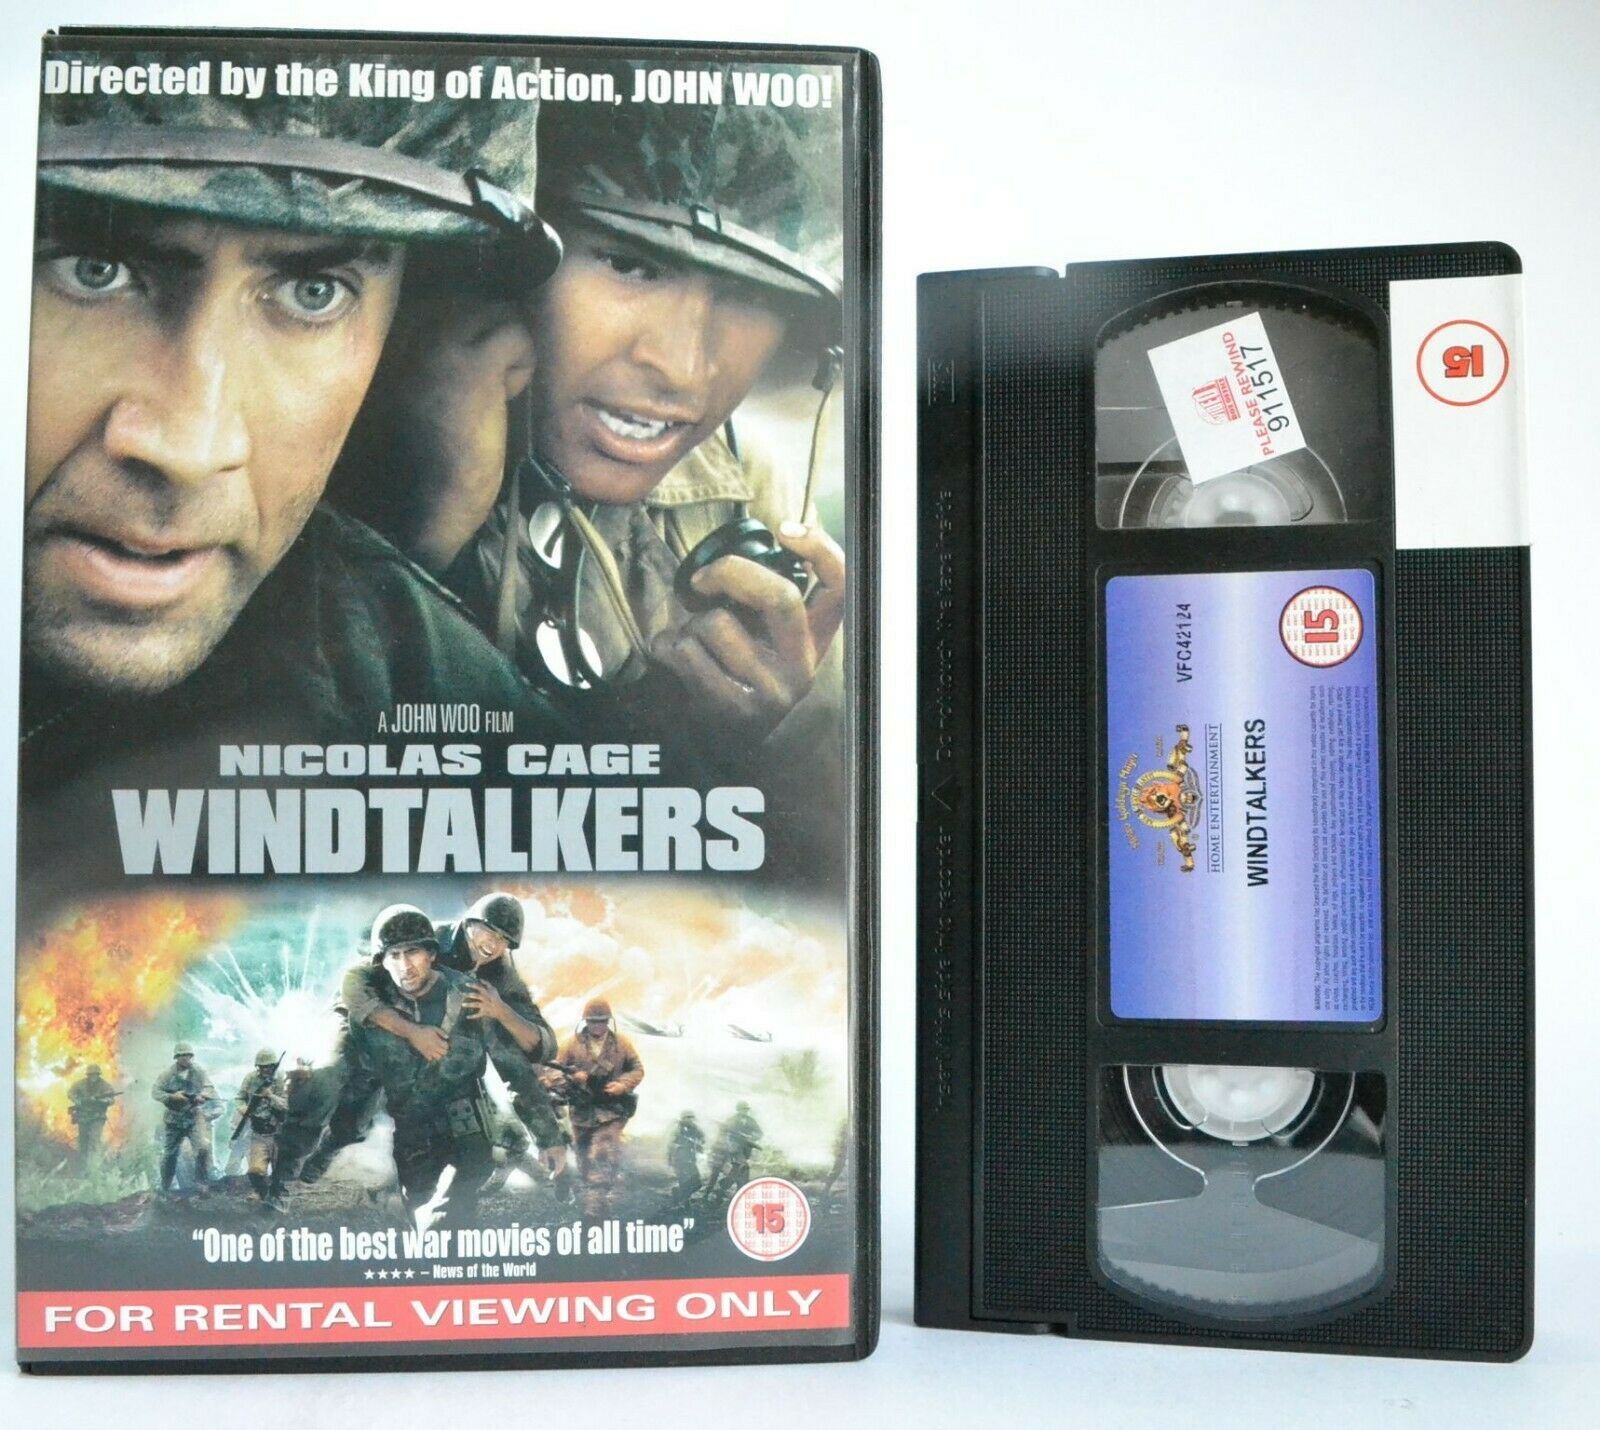 Windtalkers: Film By J.Woo (2002) - War Drama - Large Box - N.Cage - Pal VHS